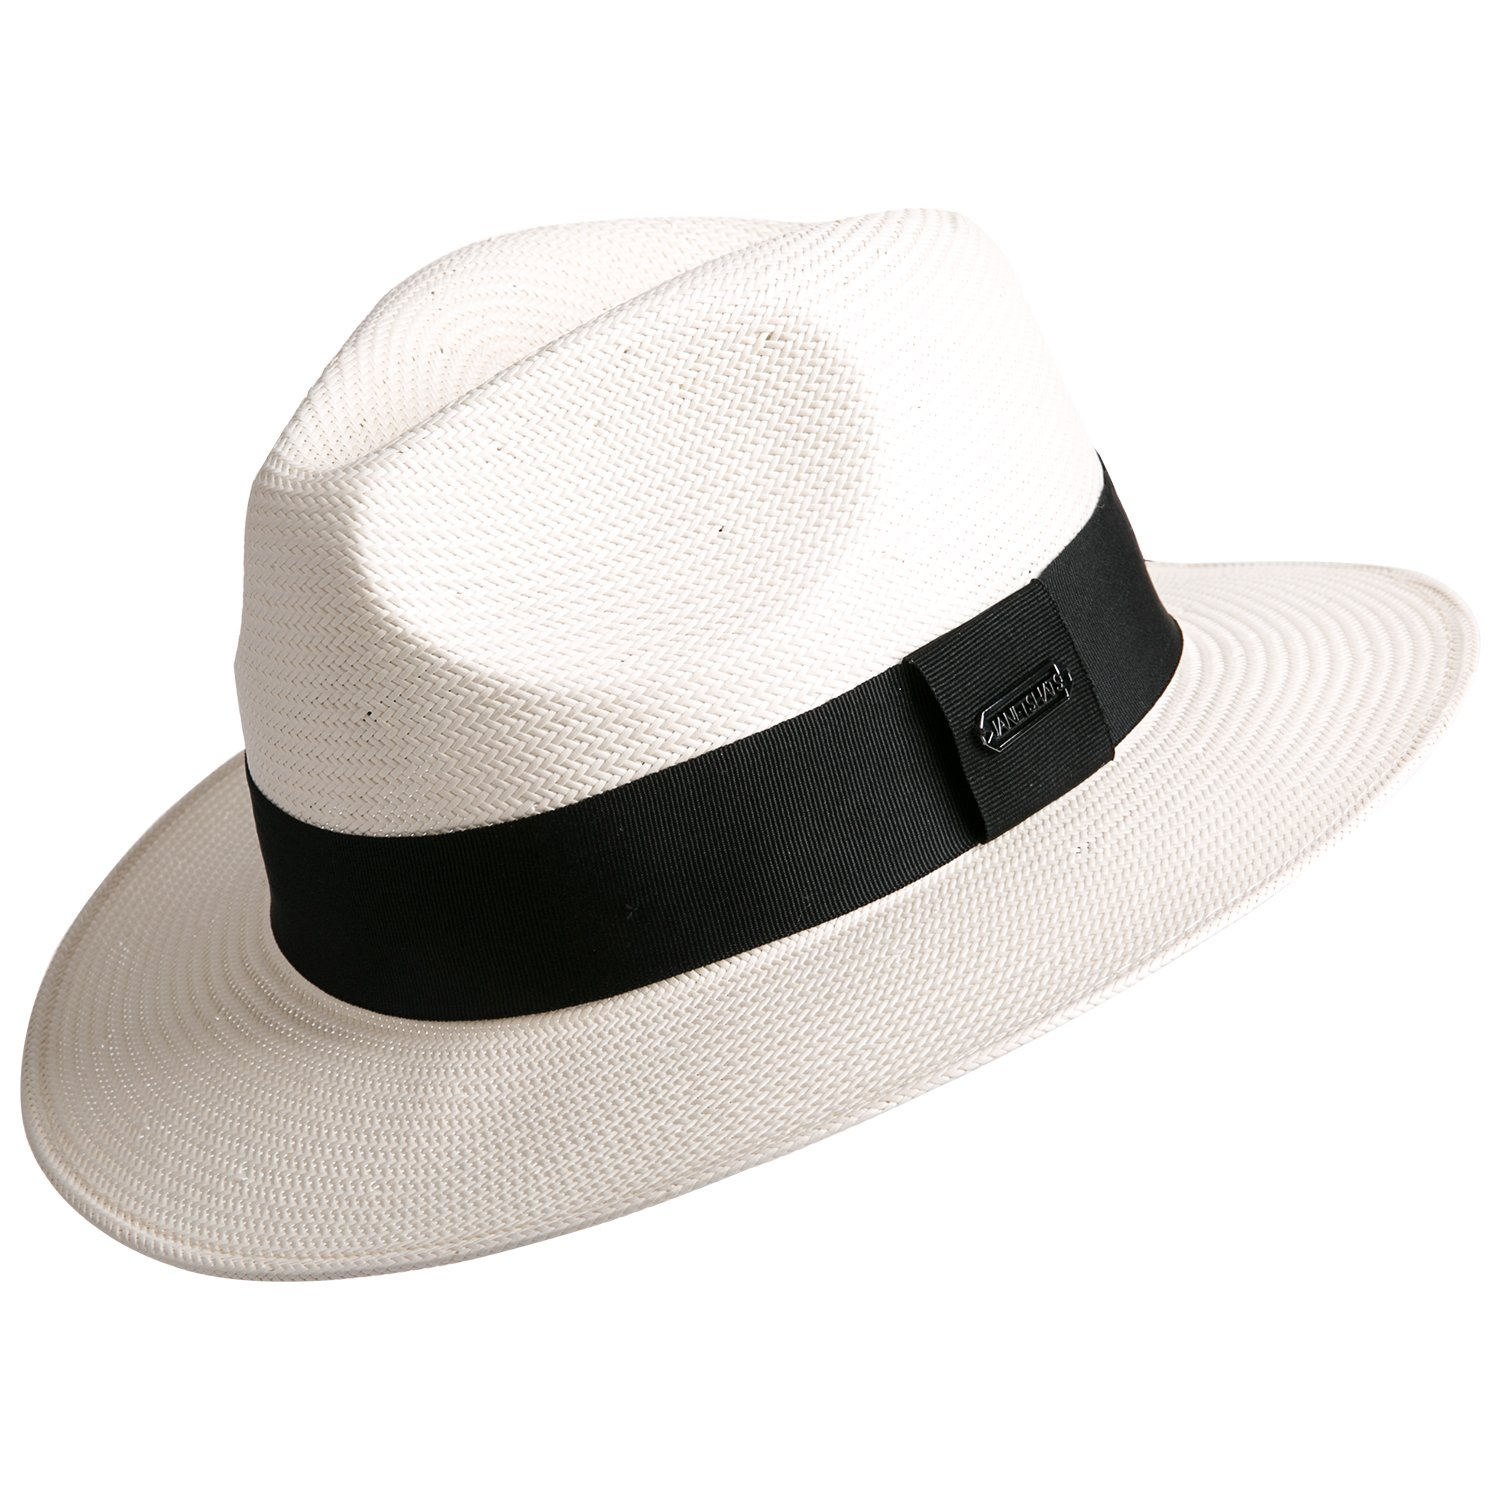 461da3ce Janetshats Gambler Panama Straw Hat Fedora Hats for Men Imported White  Japanese Paper: Amazon.ca: Clothing & Accessories